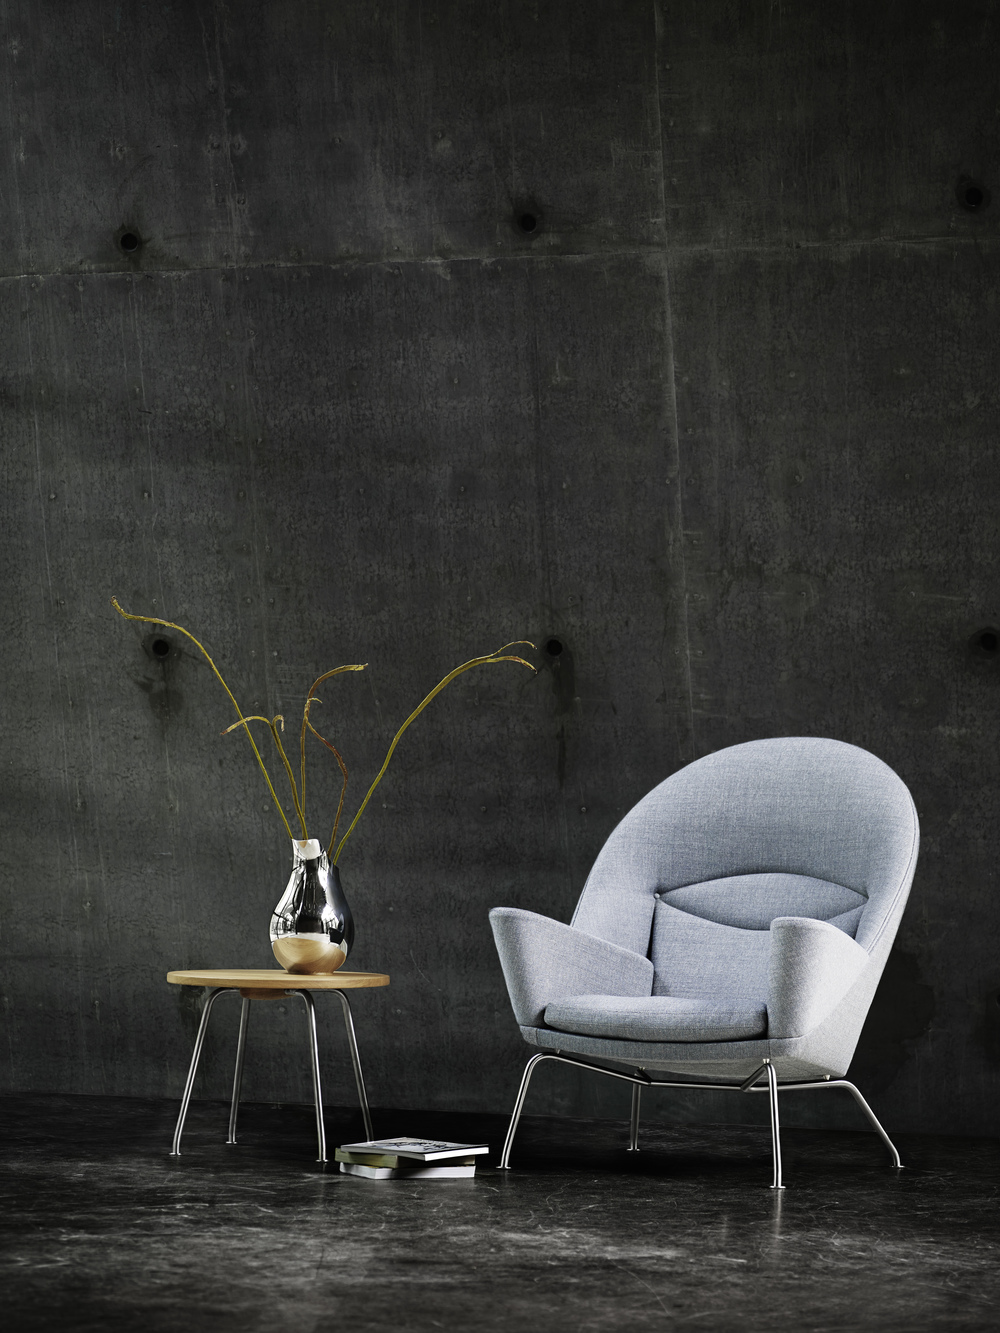 Oculus CH468 Lounge Chair by Hans Wegner for Carl Hansen